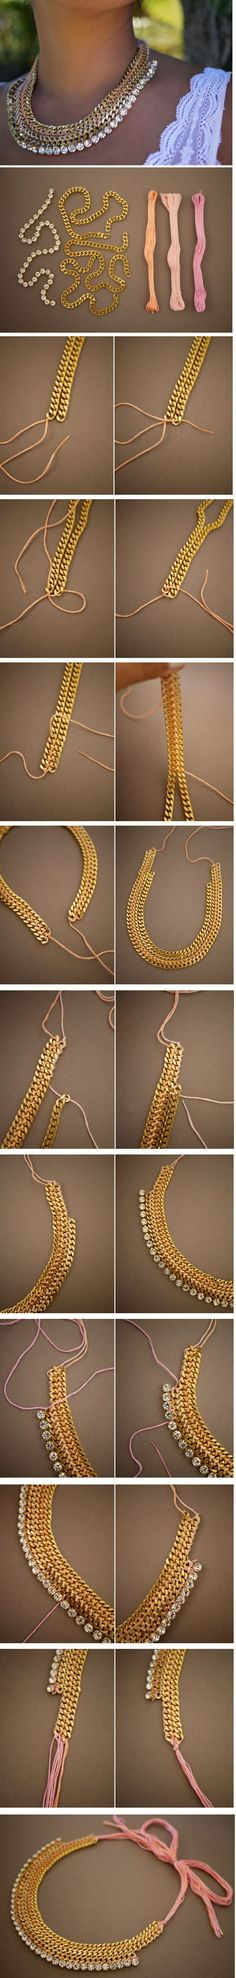 metal necklace diy http://honestlywtf.com/diy/diy-woven-chain-collar-necklace/